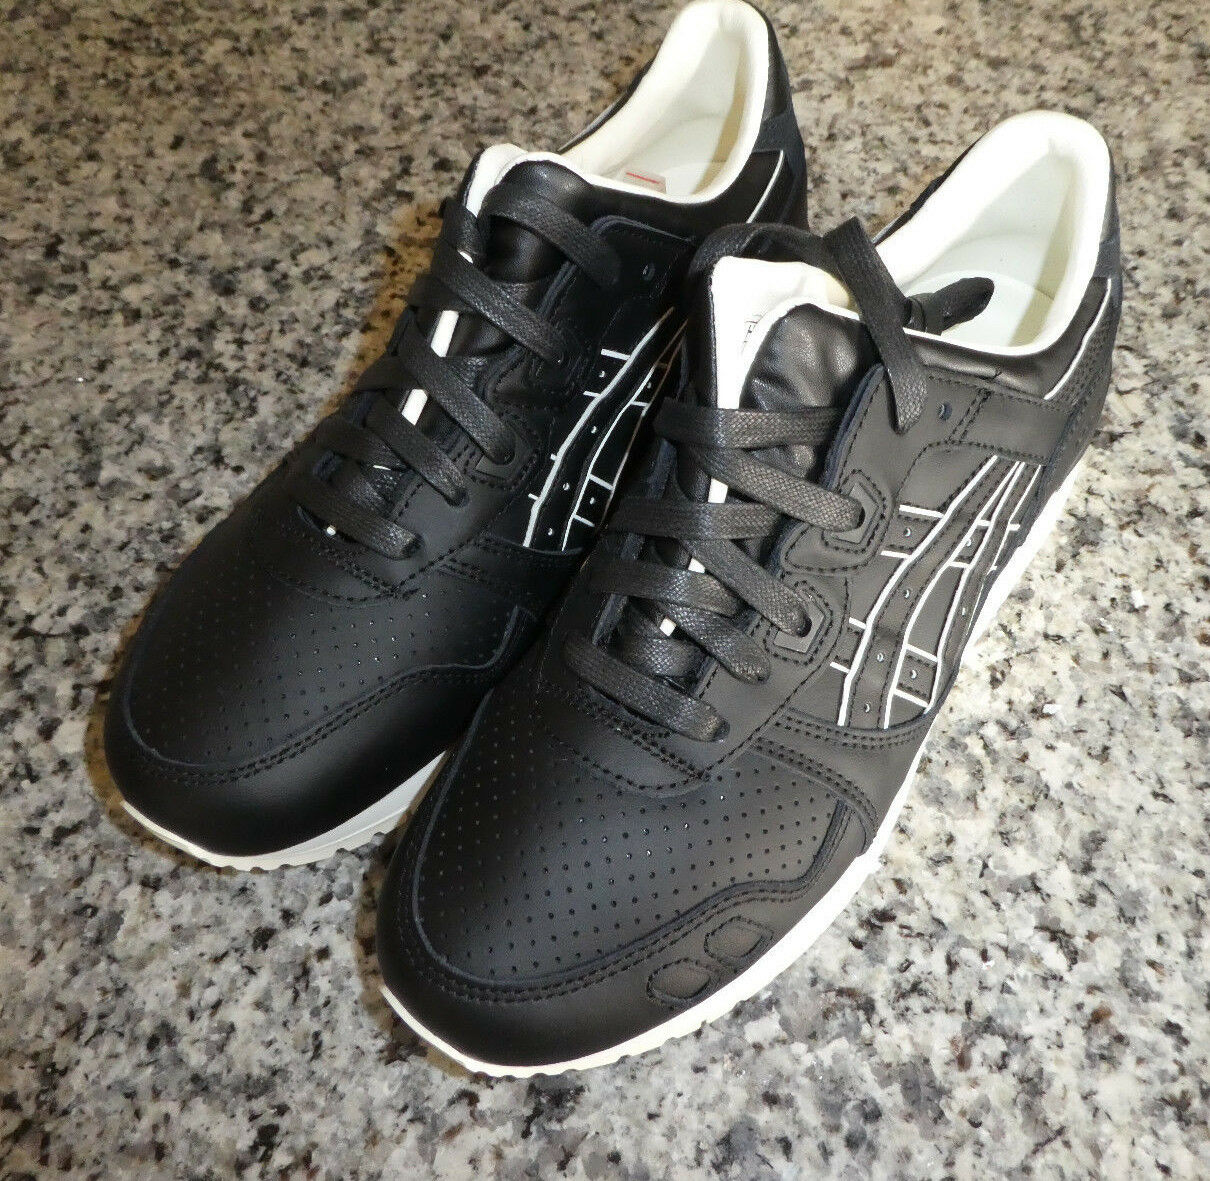 Asics Gel Lyte leather III shoes new black leather Lyte H6S3L 9090 71abc1